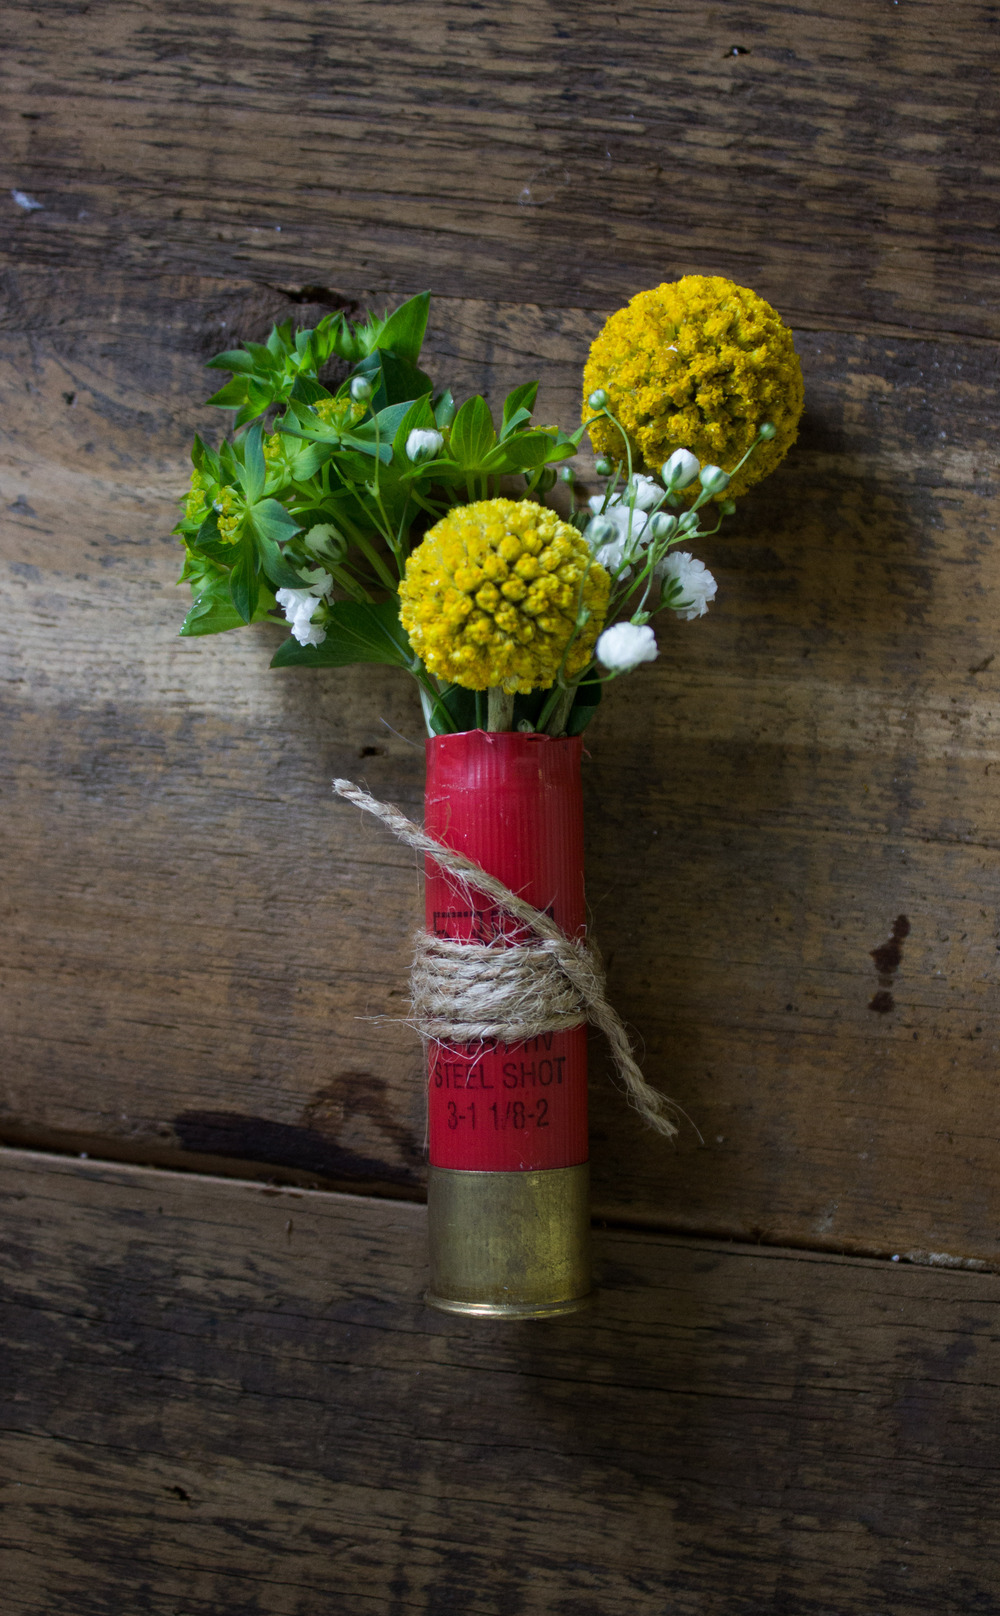 Grooms Boutonniere with Craspedia and Greens in a shotgun casing